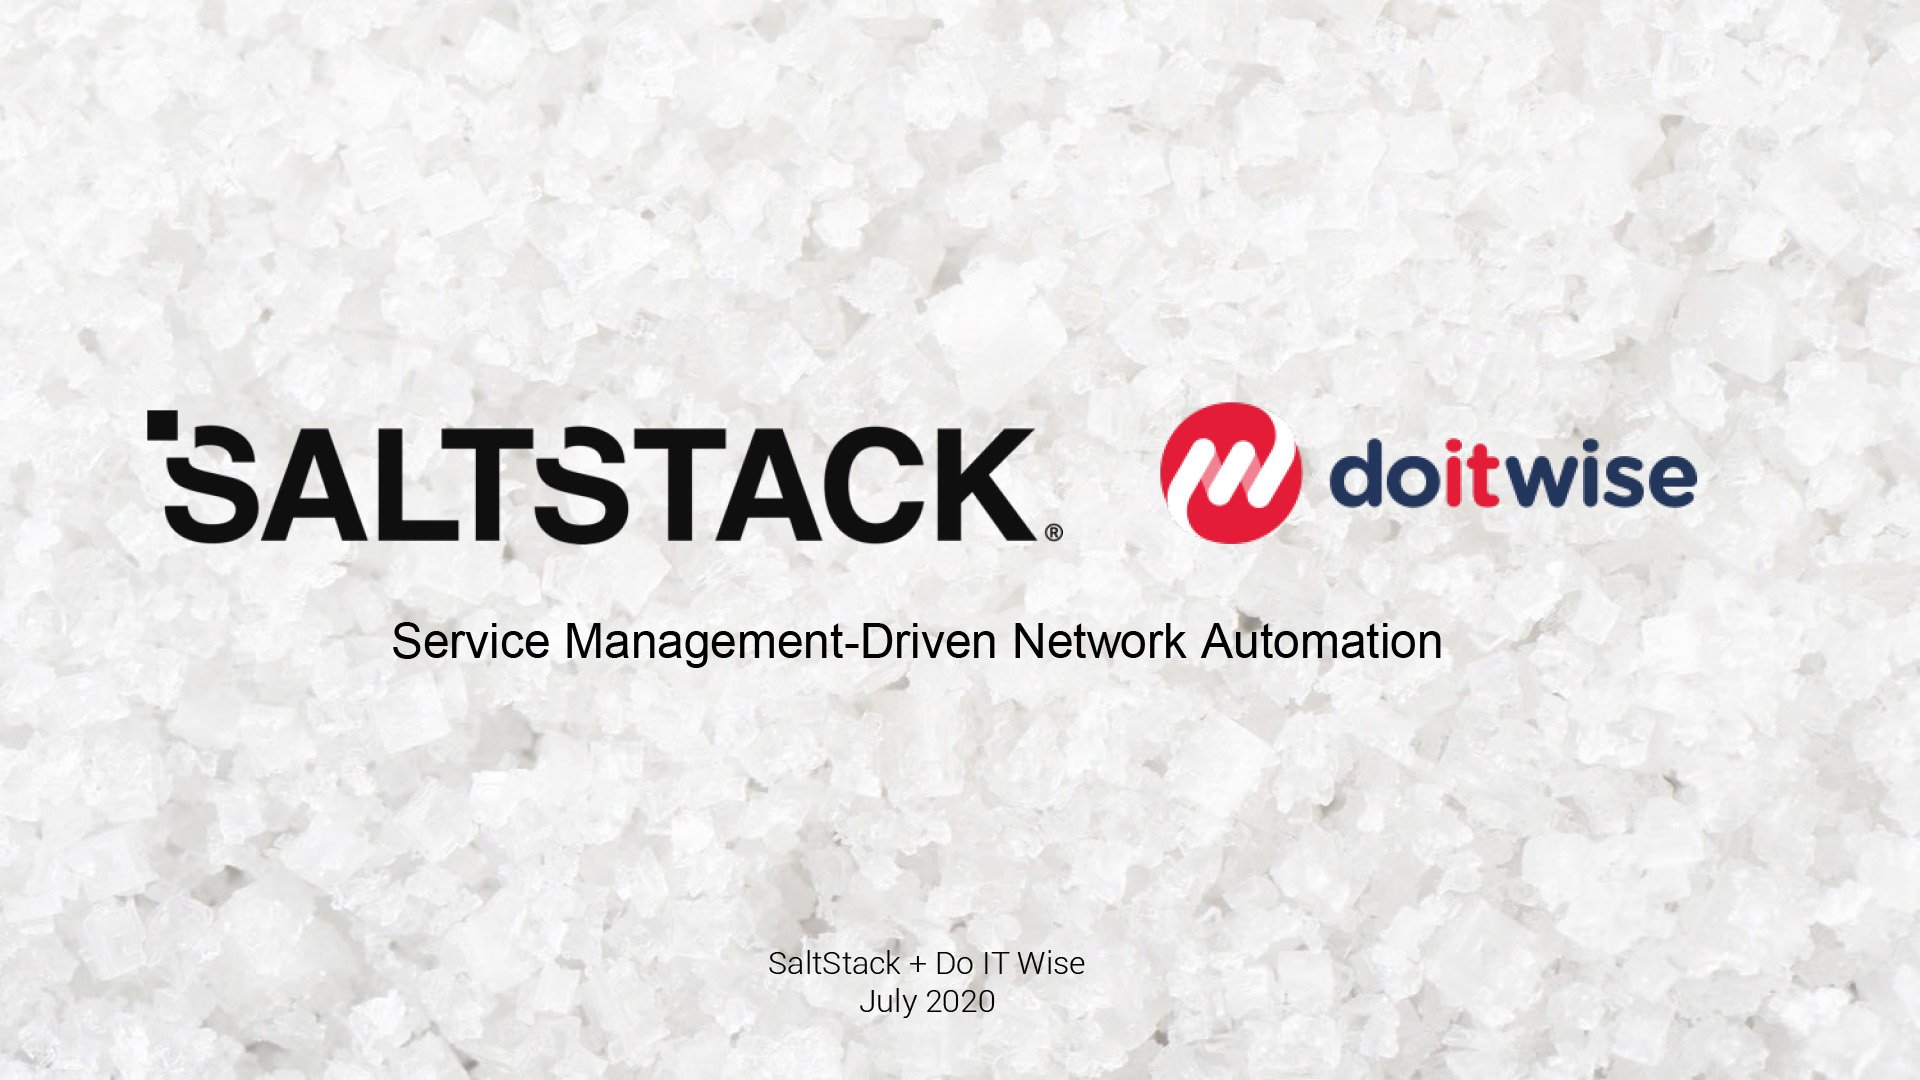 Webinar: Service Management-Driven Network Automation with Do IT Wise and SaltStack